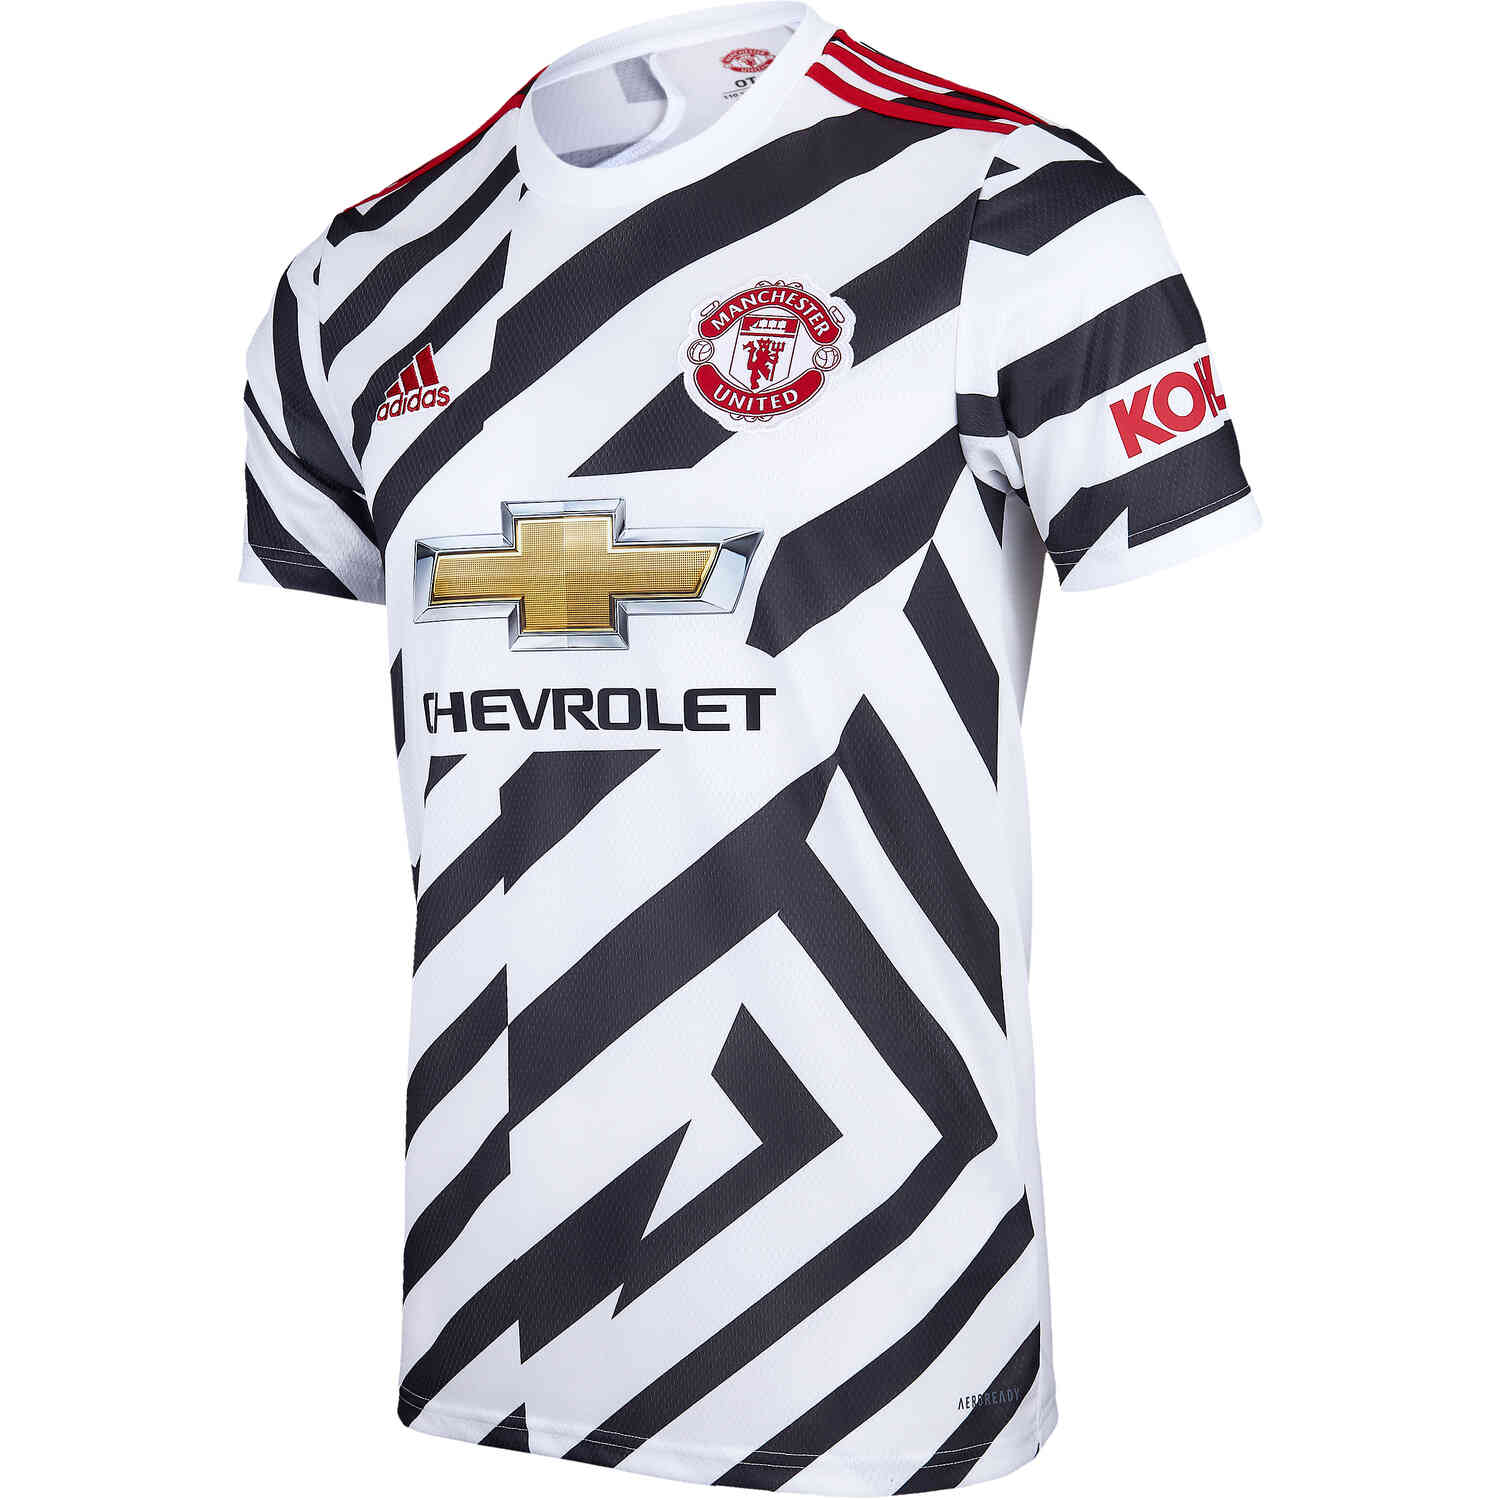 2020/21 Kids adidas Manchester United 3rd Jersey - Soccer Master